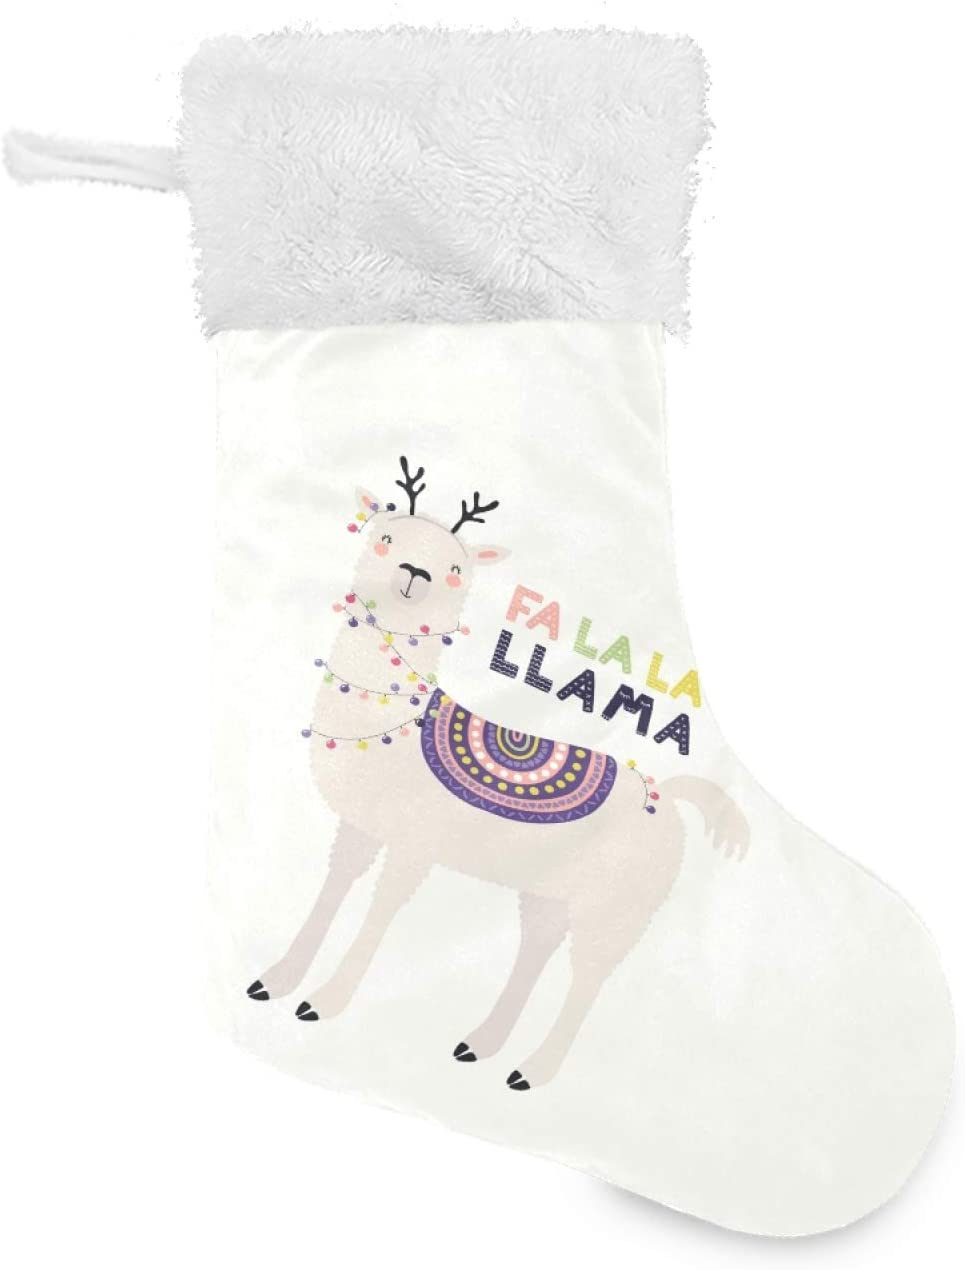 Popular brand in the world Cute Funny Llama Year-end annual account Deer Christmas f Antlers Stockings